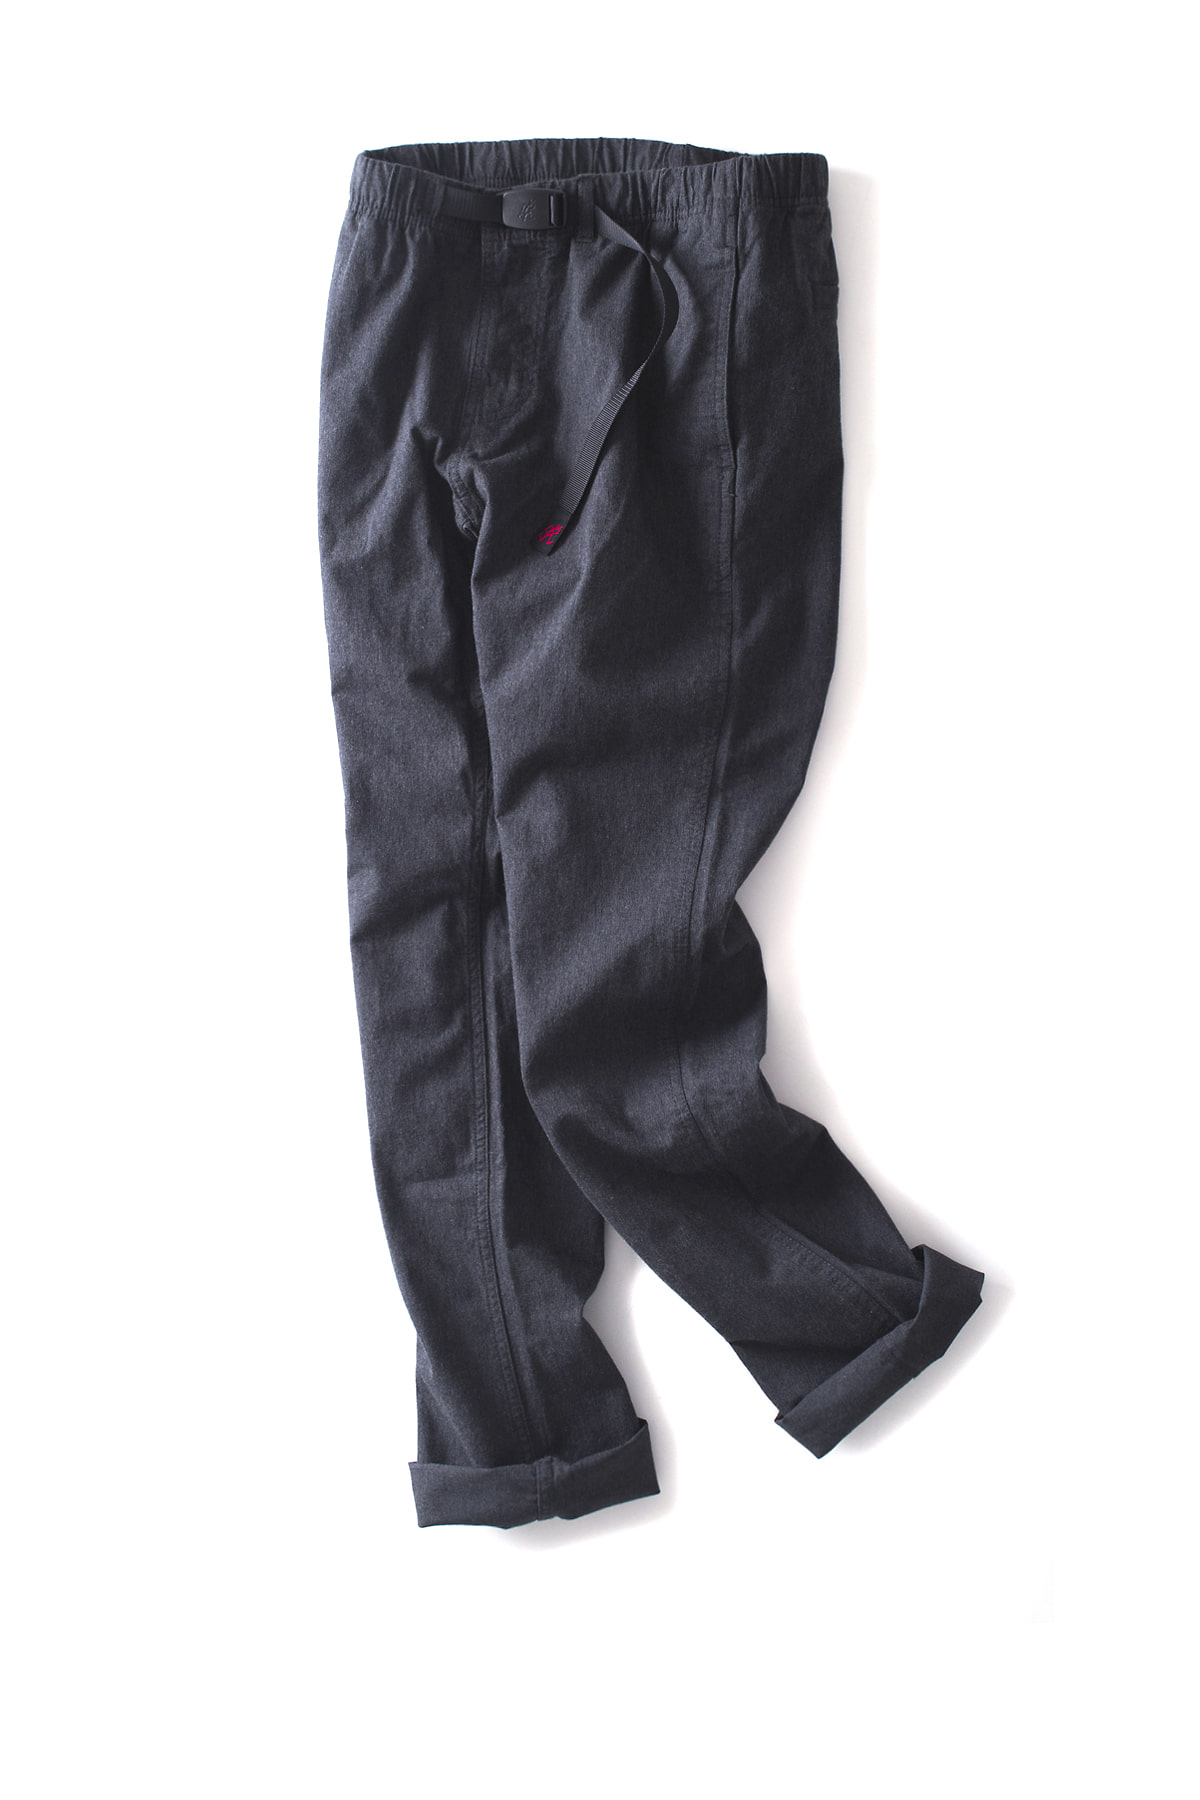 Gramicci : NN Pants (Heather Charcoal)